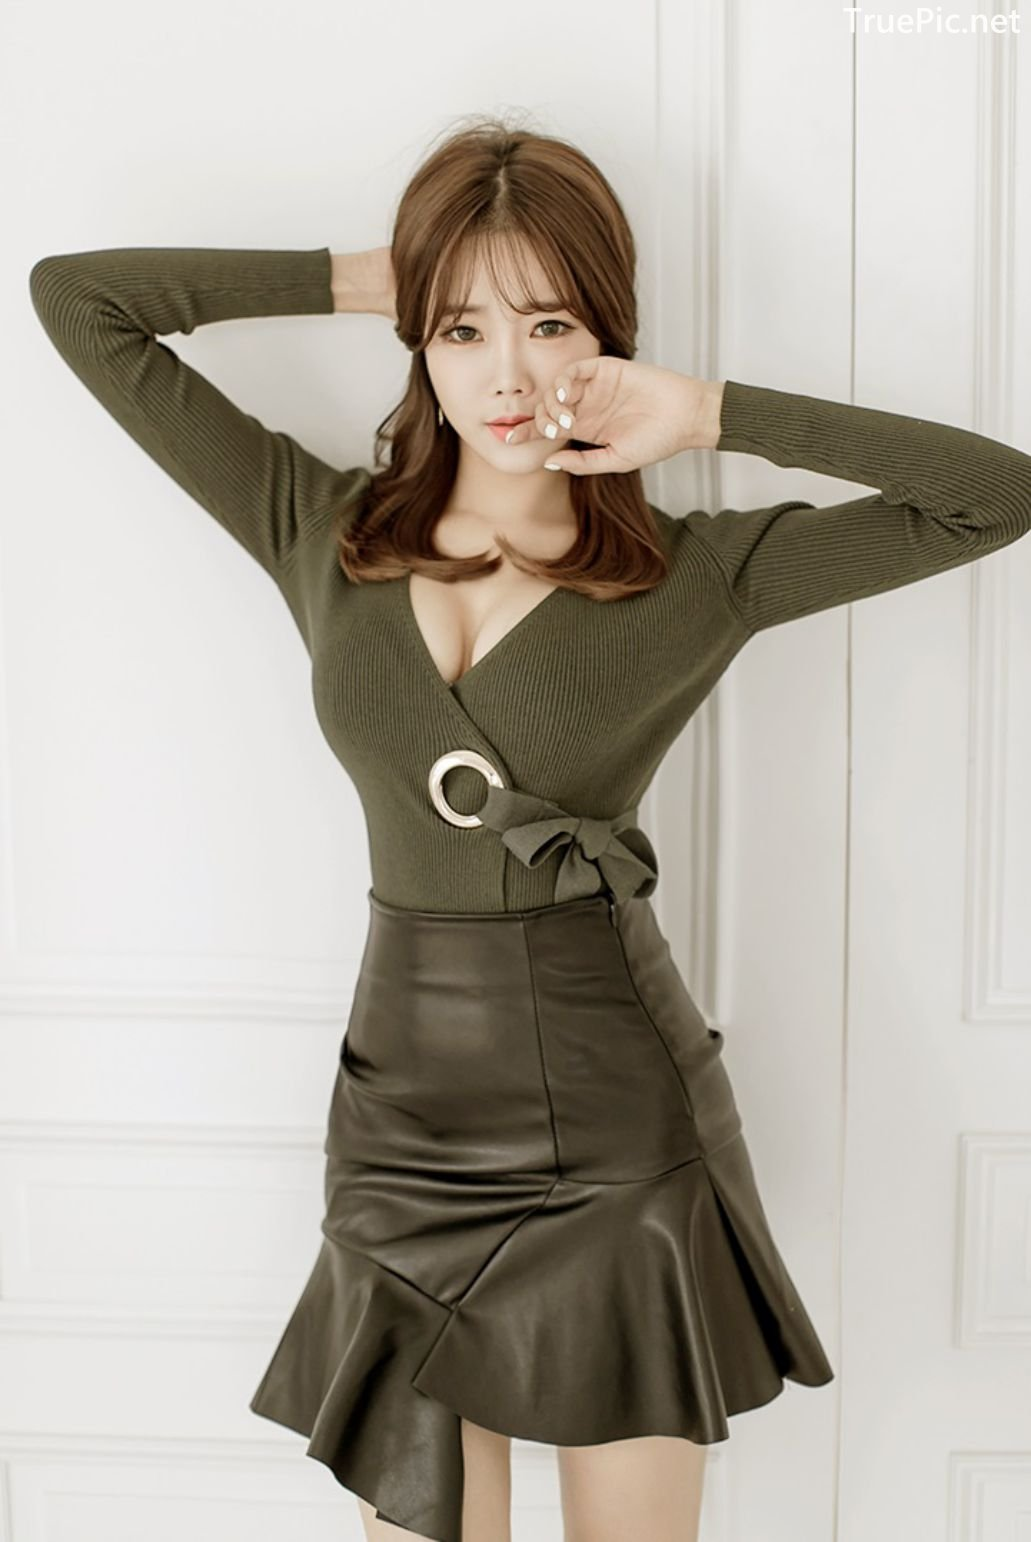 Image-Korean-Fashion-Model–Kang-Eun-Wook–Indoor-Photoshoot-Collection-2-TruePic.net- Picture-6